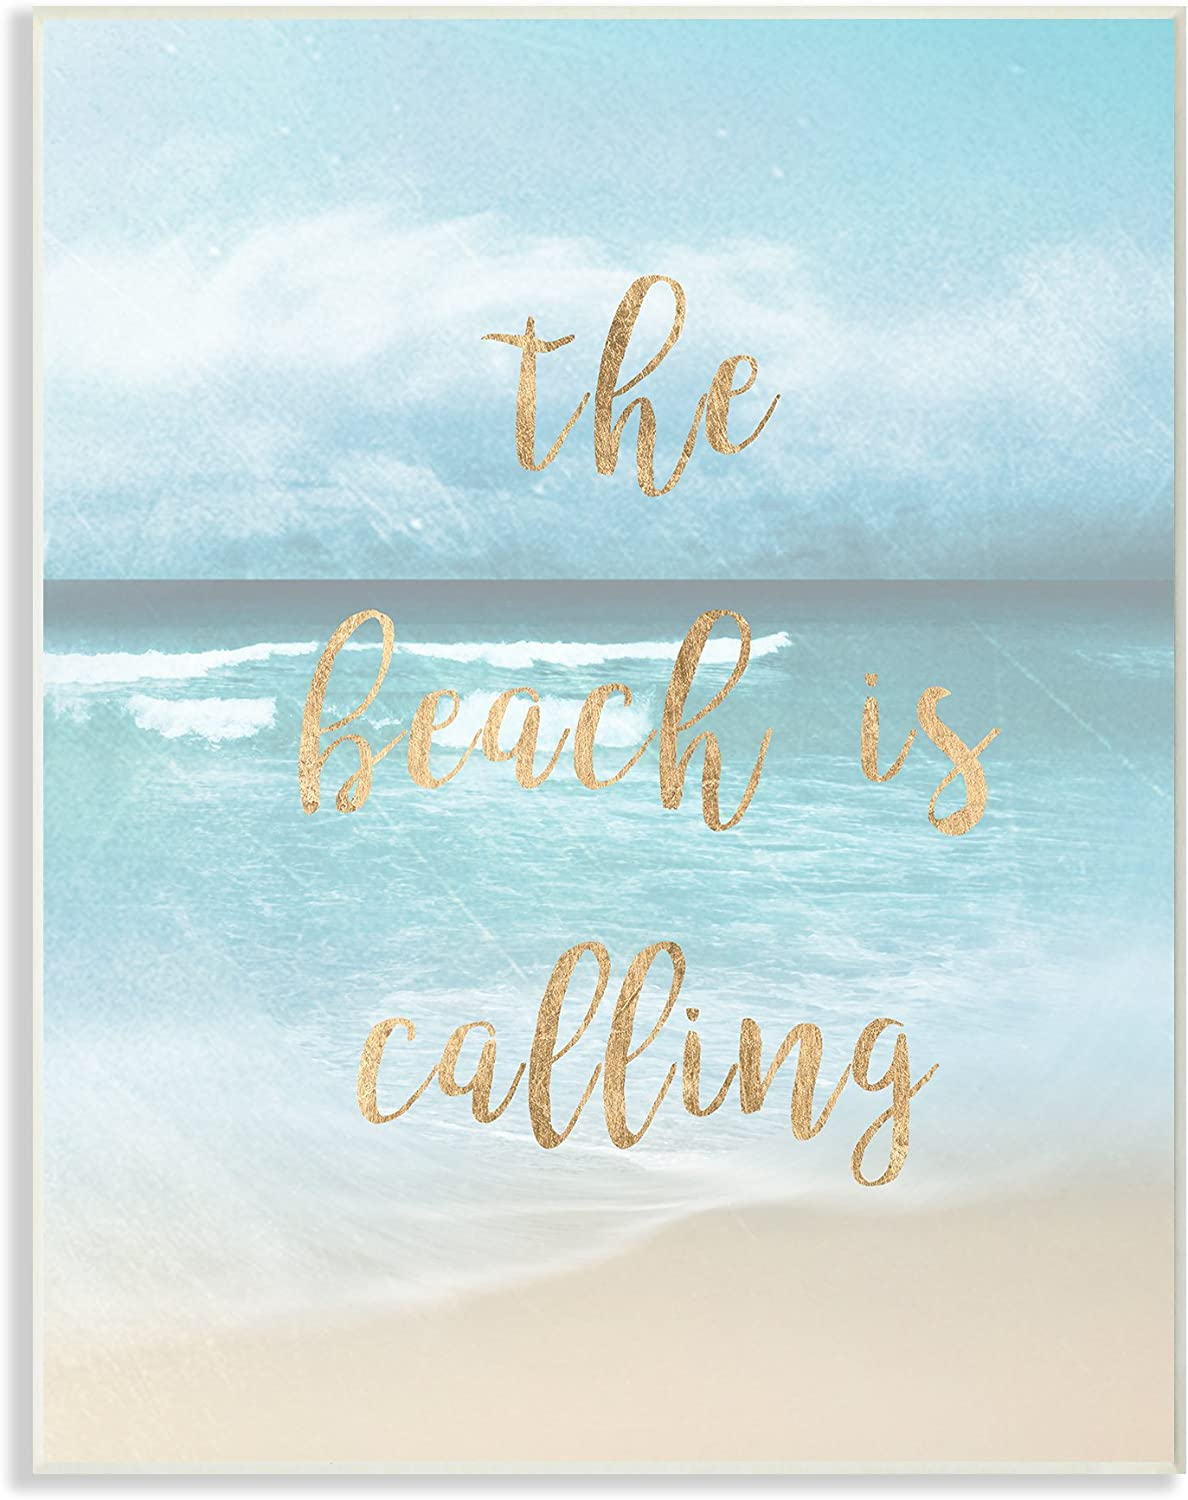 Stupell Home Décor The Beach Is Calling Gold Typography Wall Plaque Art, 10 x 0.5 x 15, Proudly Made in USA